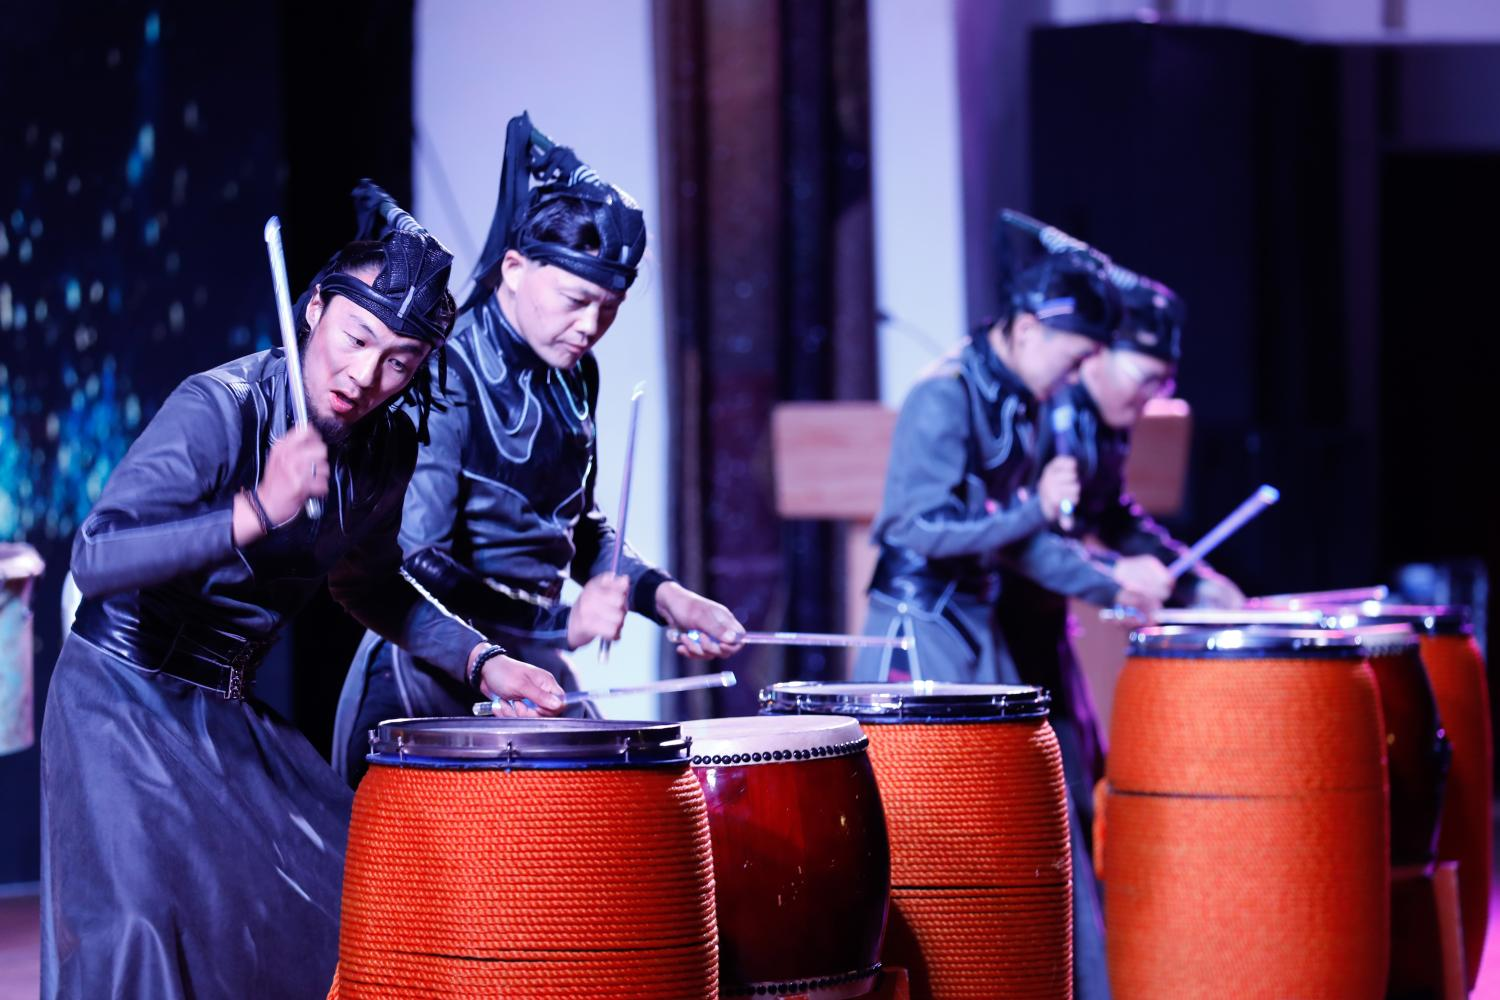 InAsia_Mongolia_Drums_YouthSummit